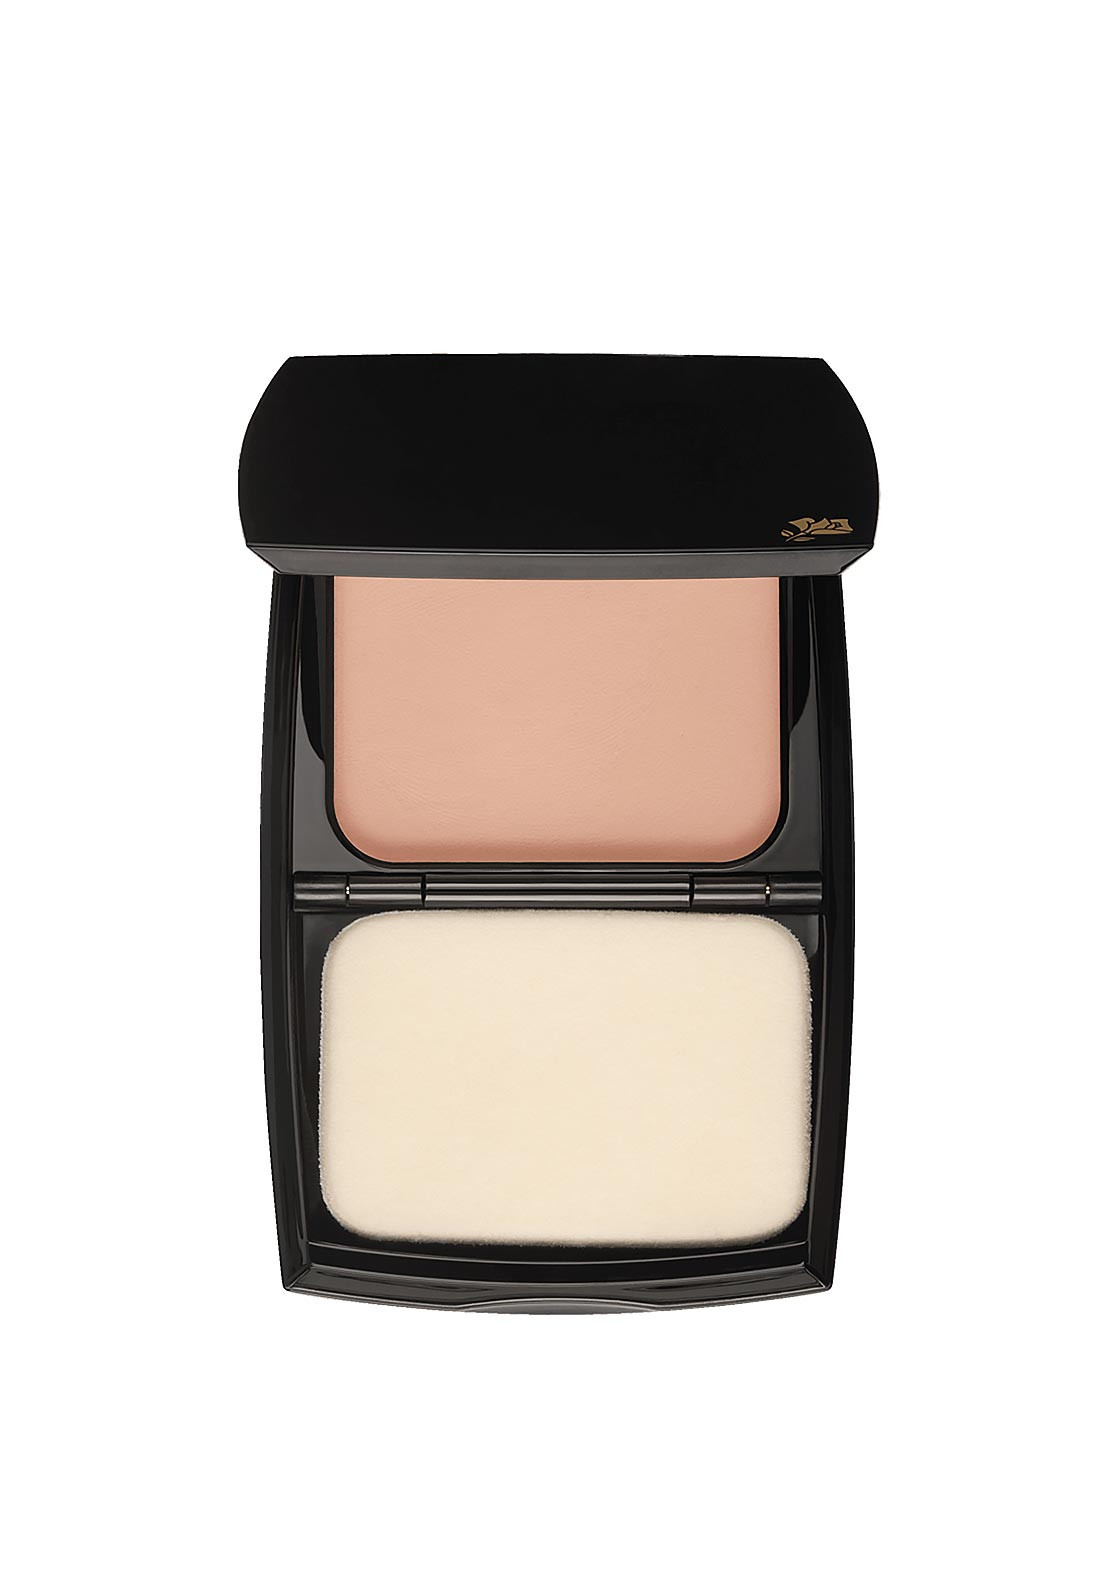 Lancome Teint Idole Ultra Compact Powder Foundation- 01